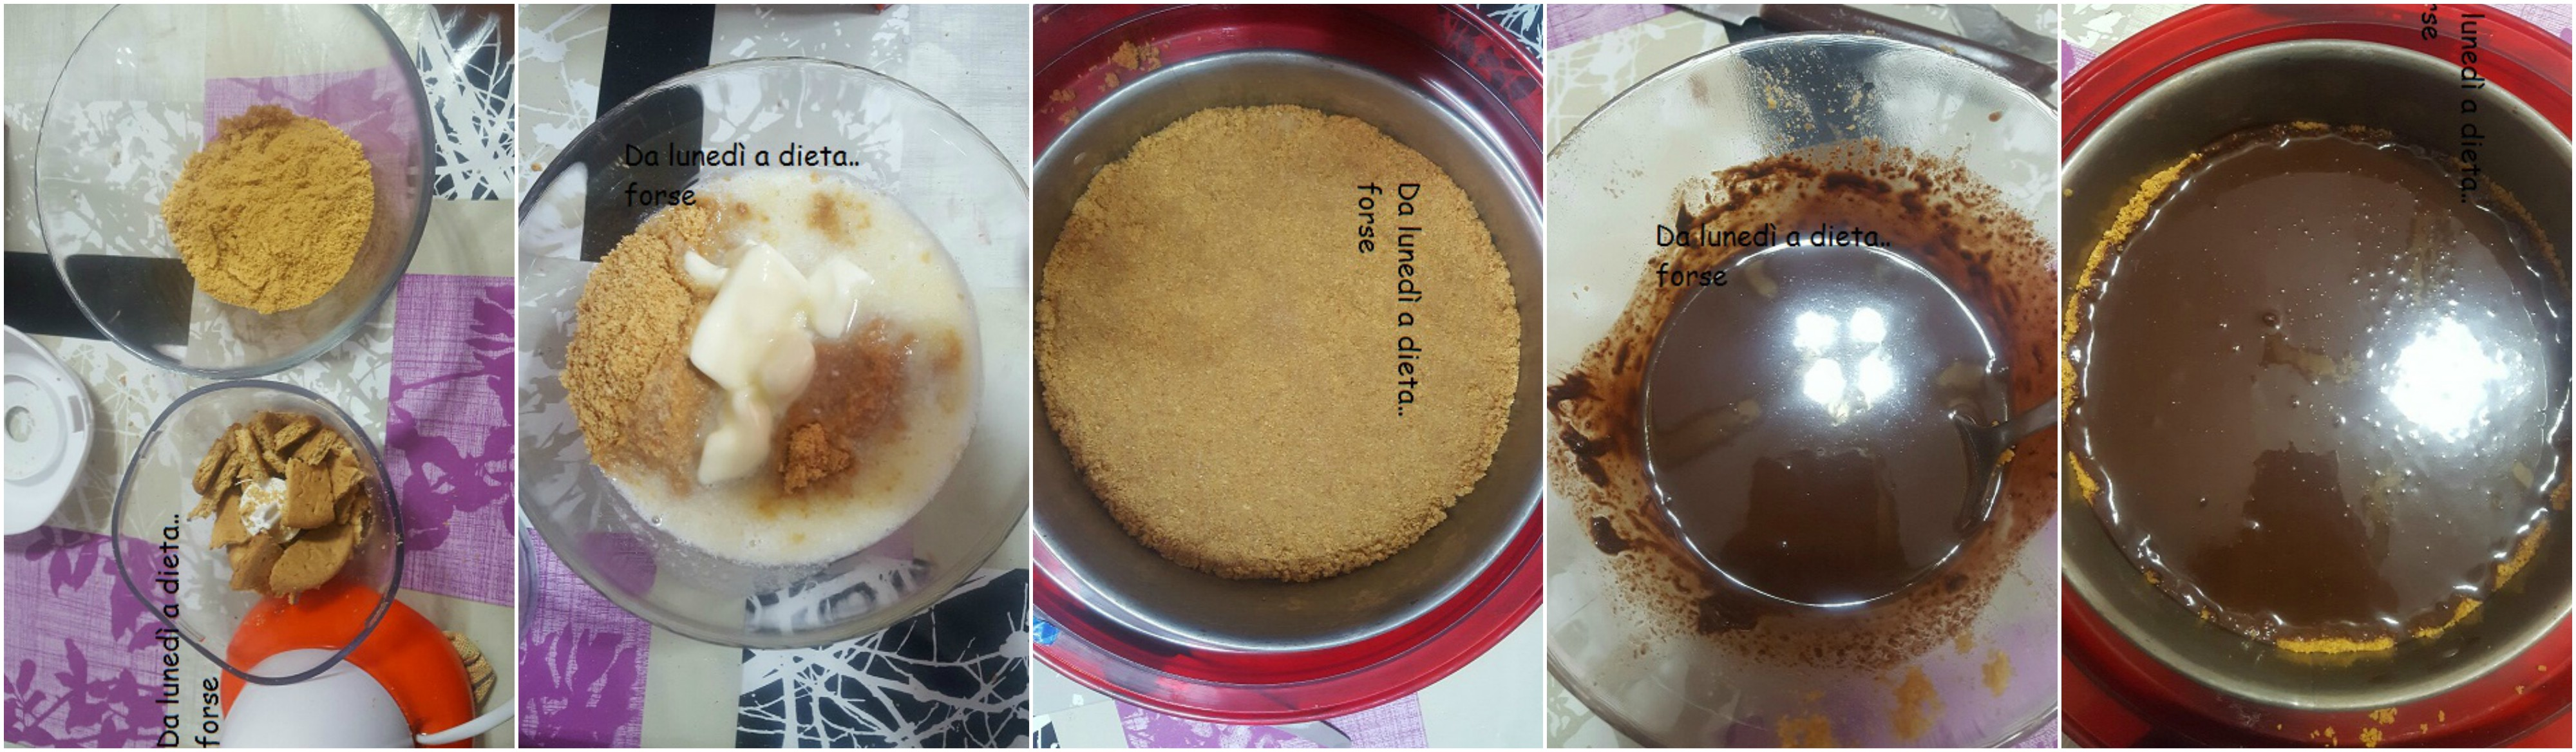 Base cheesecake collage